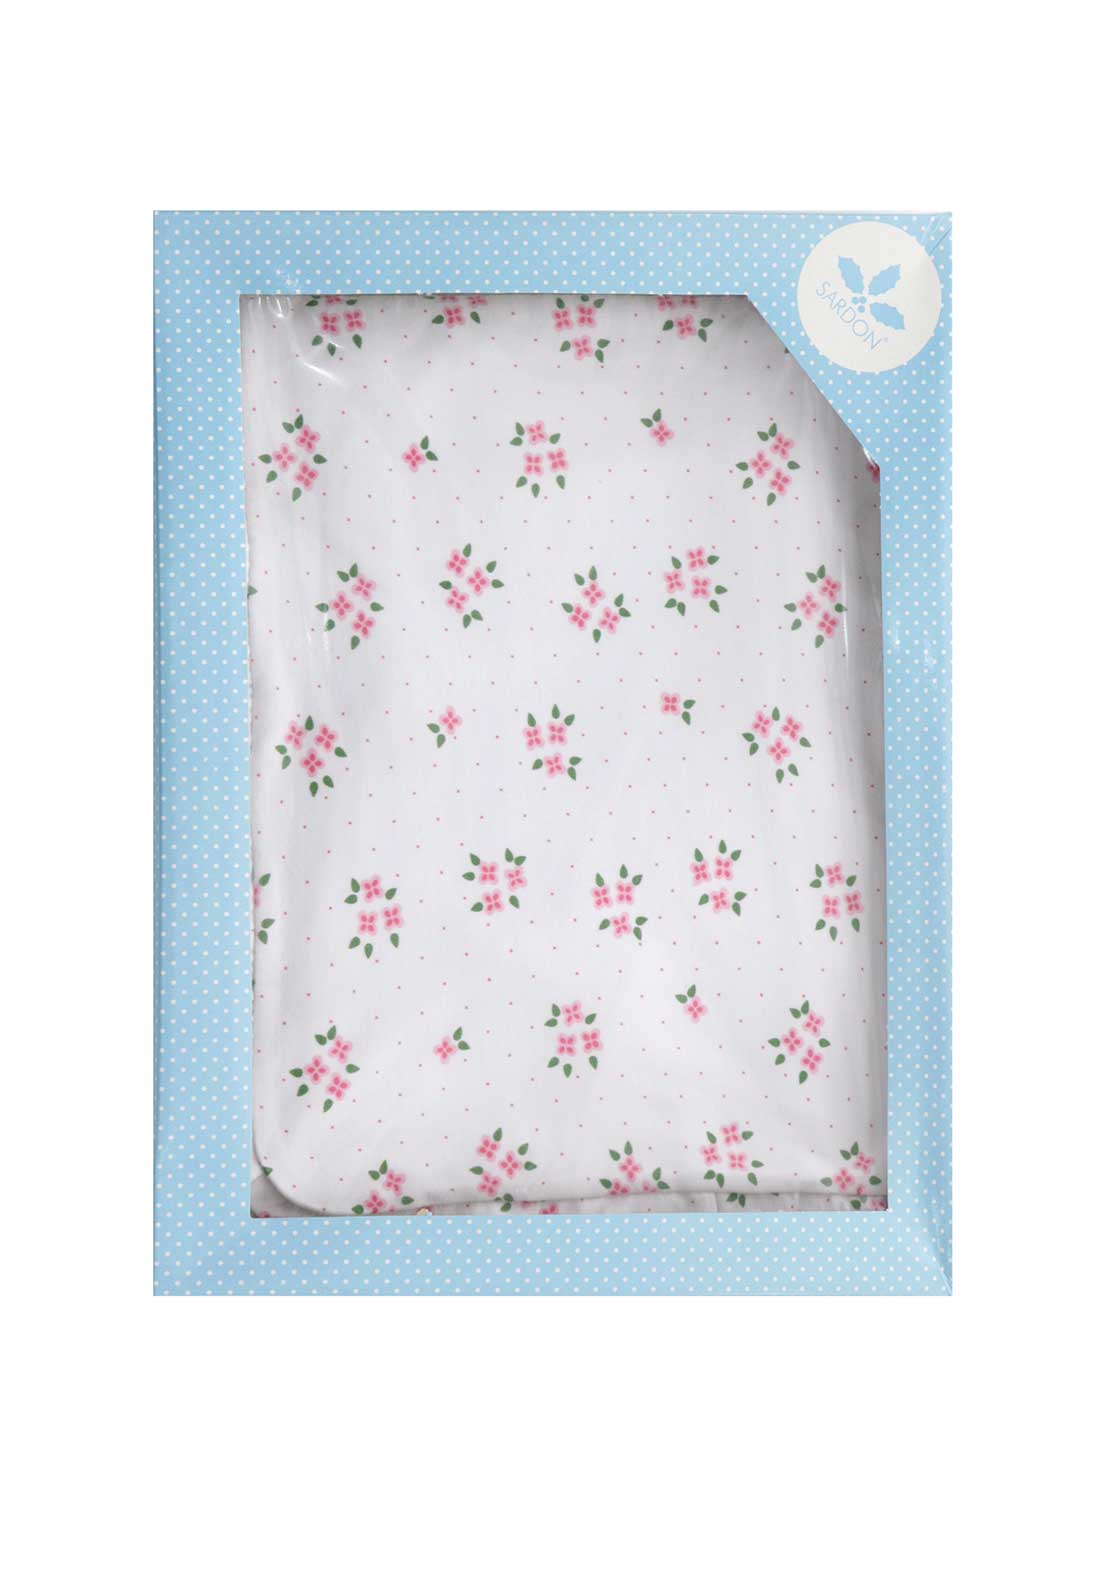 Sardon Floral Print Cotton Boxed Baby Blanket, White